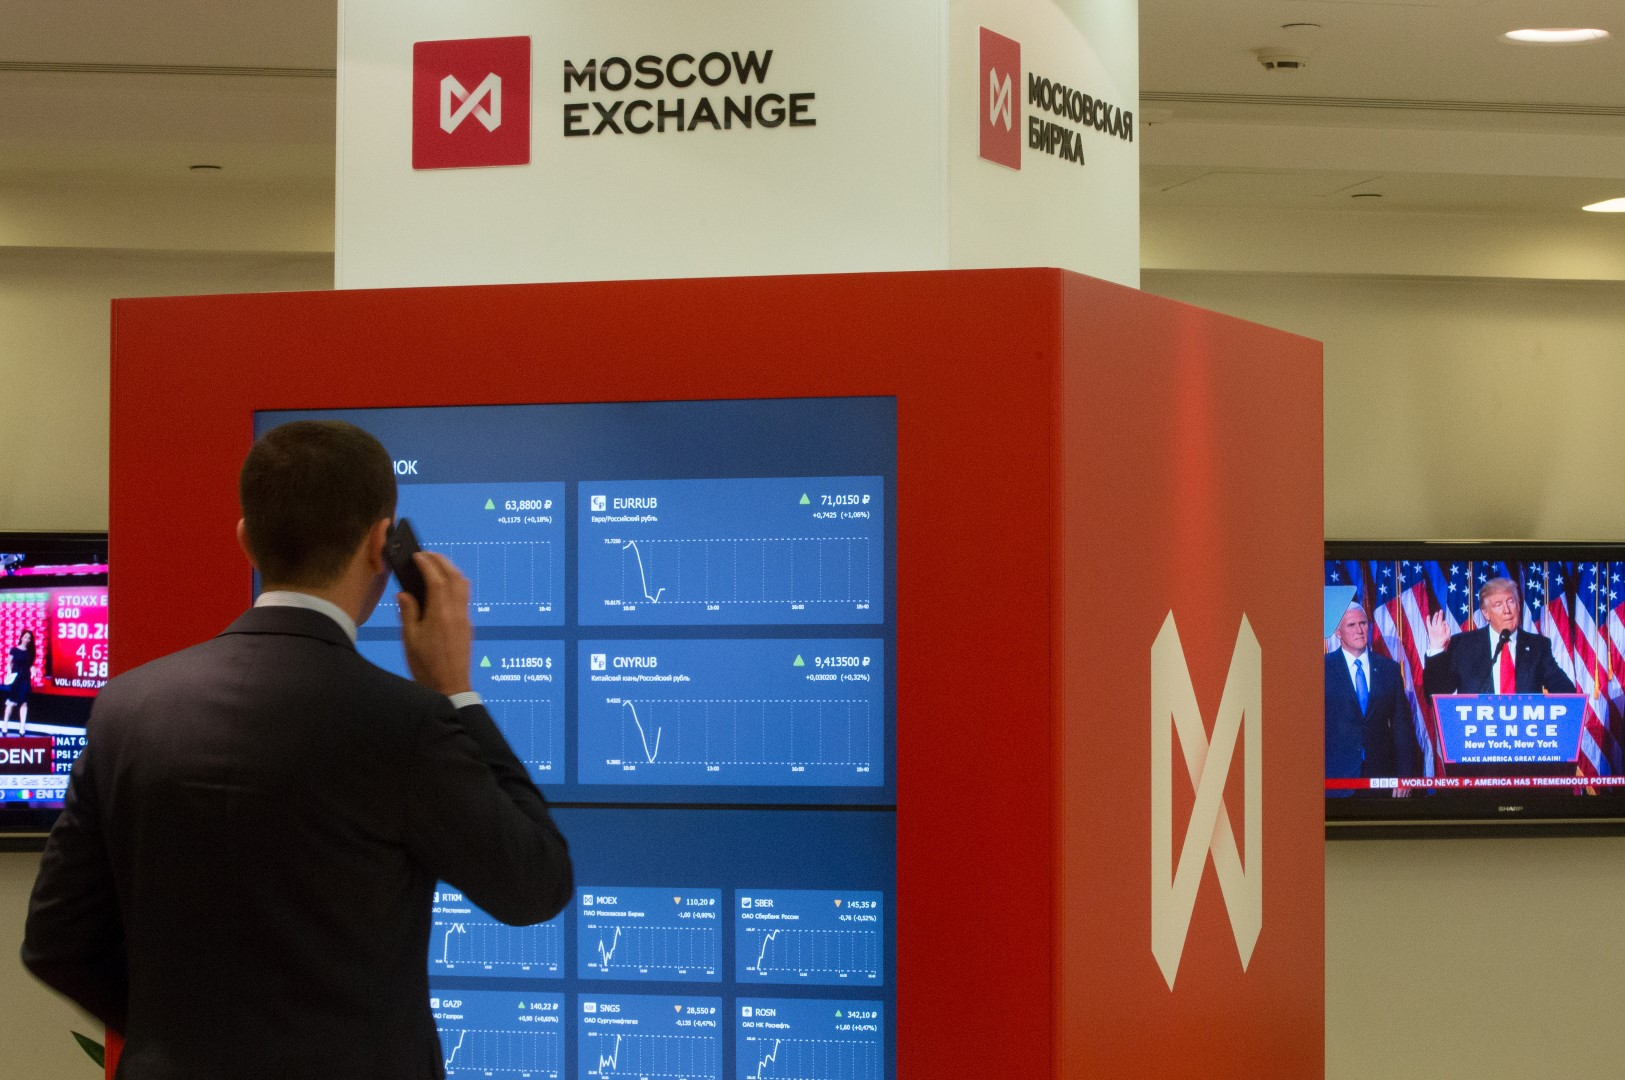 A visitor speaks on a smartphone while looking at financial information screens showing market reaction to the U.S. presidential election results at the Moscow Exchange in Moscow, Russia, Nov. 9, 2016. The ruble dropped as Donald Trump won the U.S. presidential race, driving down crude prices on concern his protectionist policies will sap global growth. Photographer: Andrey Rudakov/Bloomberg